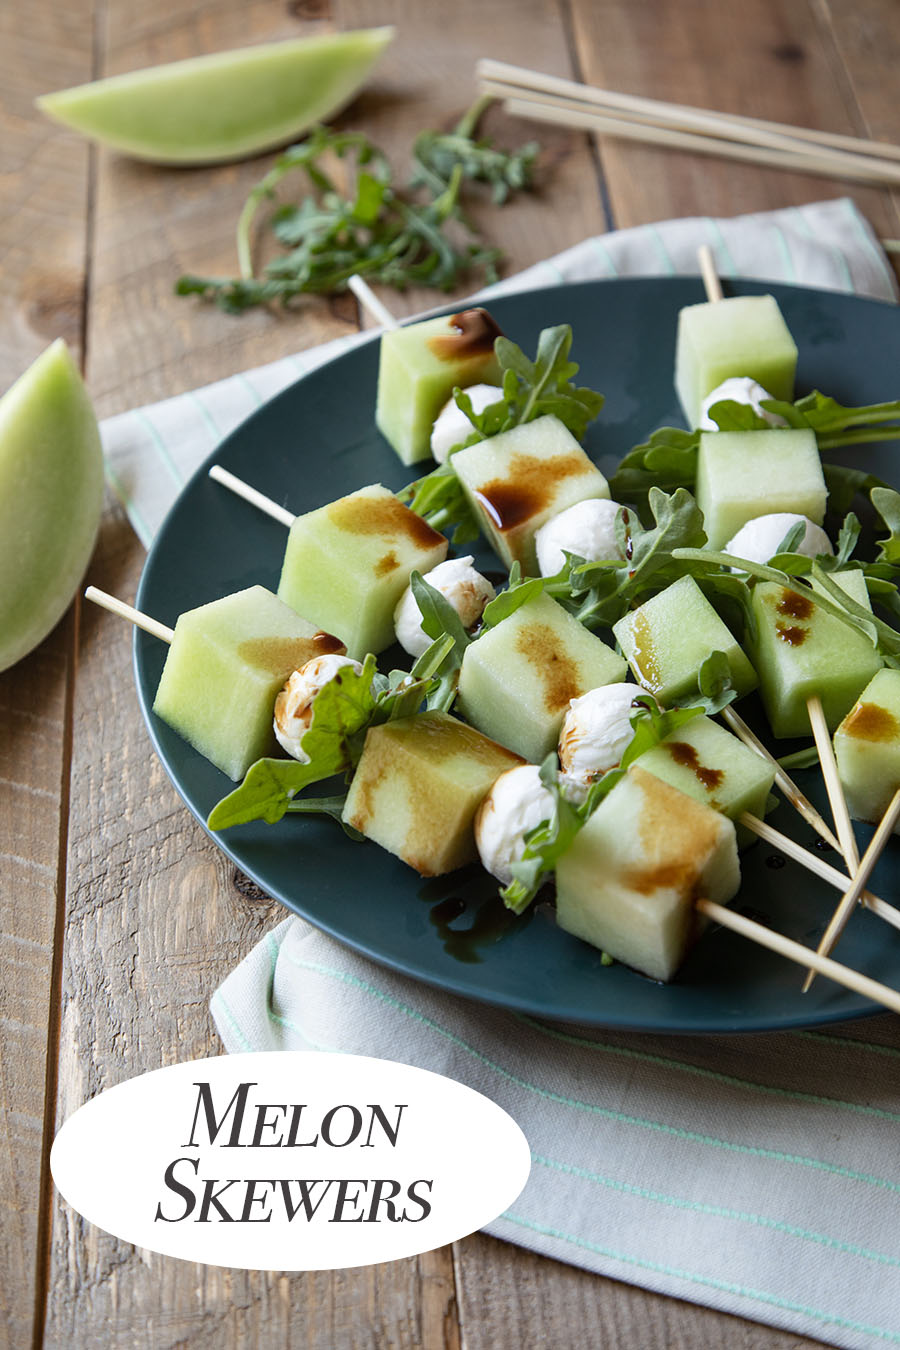 Honeydew Melon Appetizer Skewers. These fruit skewers are great in the summer with fresh melon.